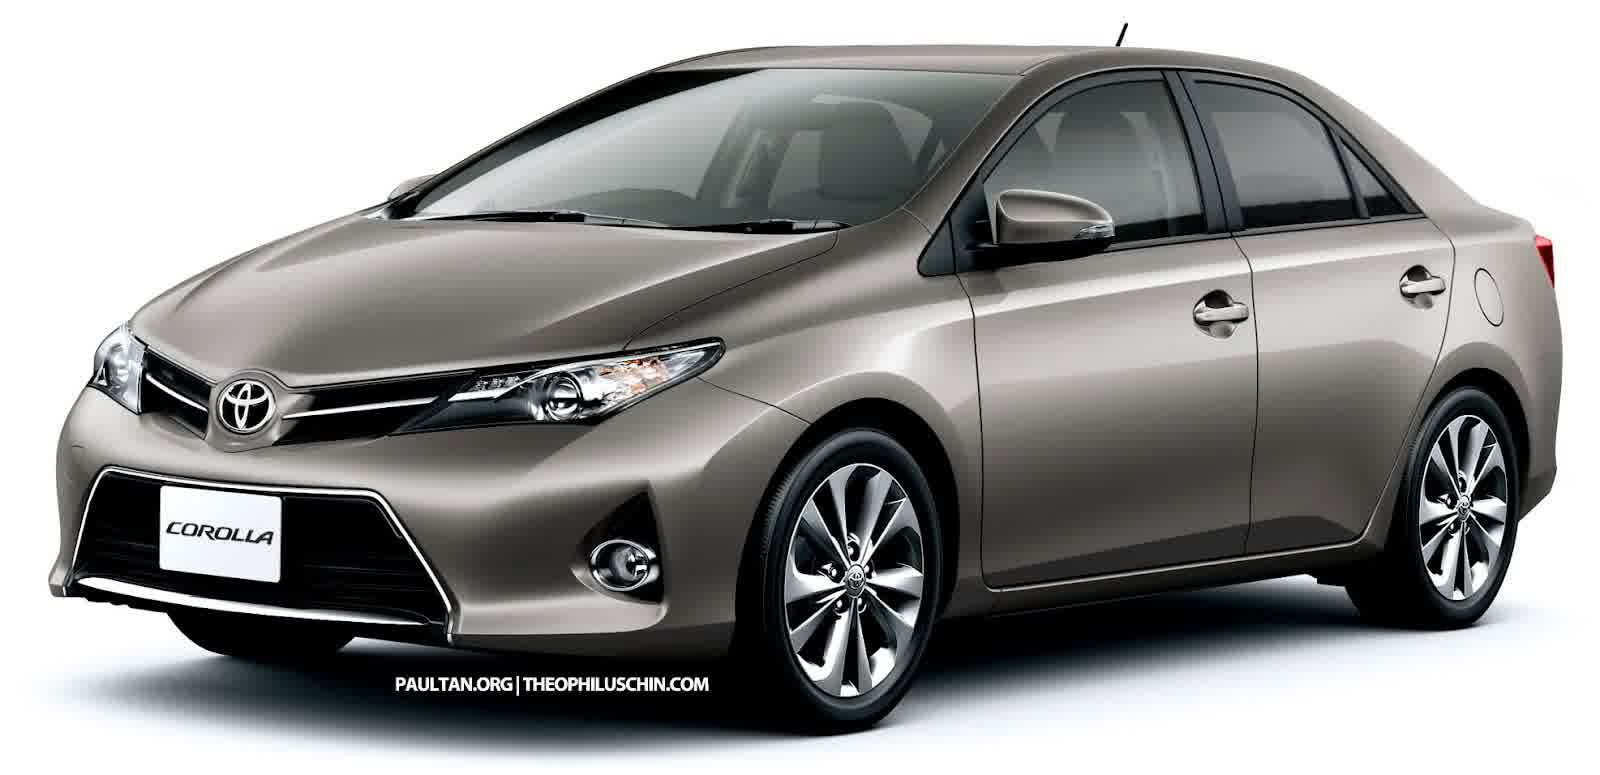 new car releases 2014This article is excerpted from the blog New Car Release In this